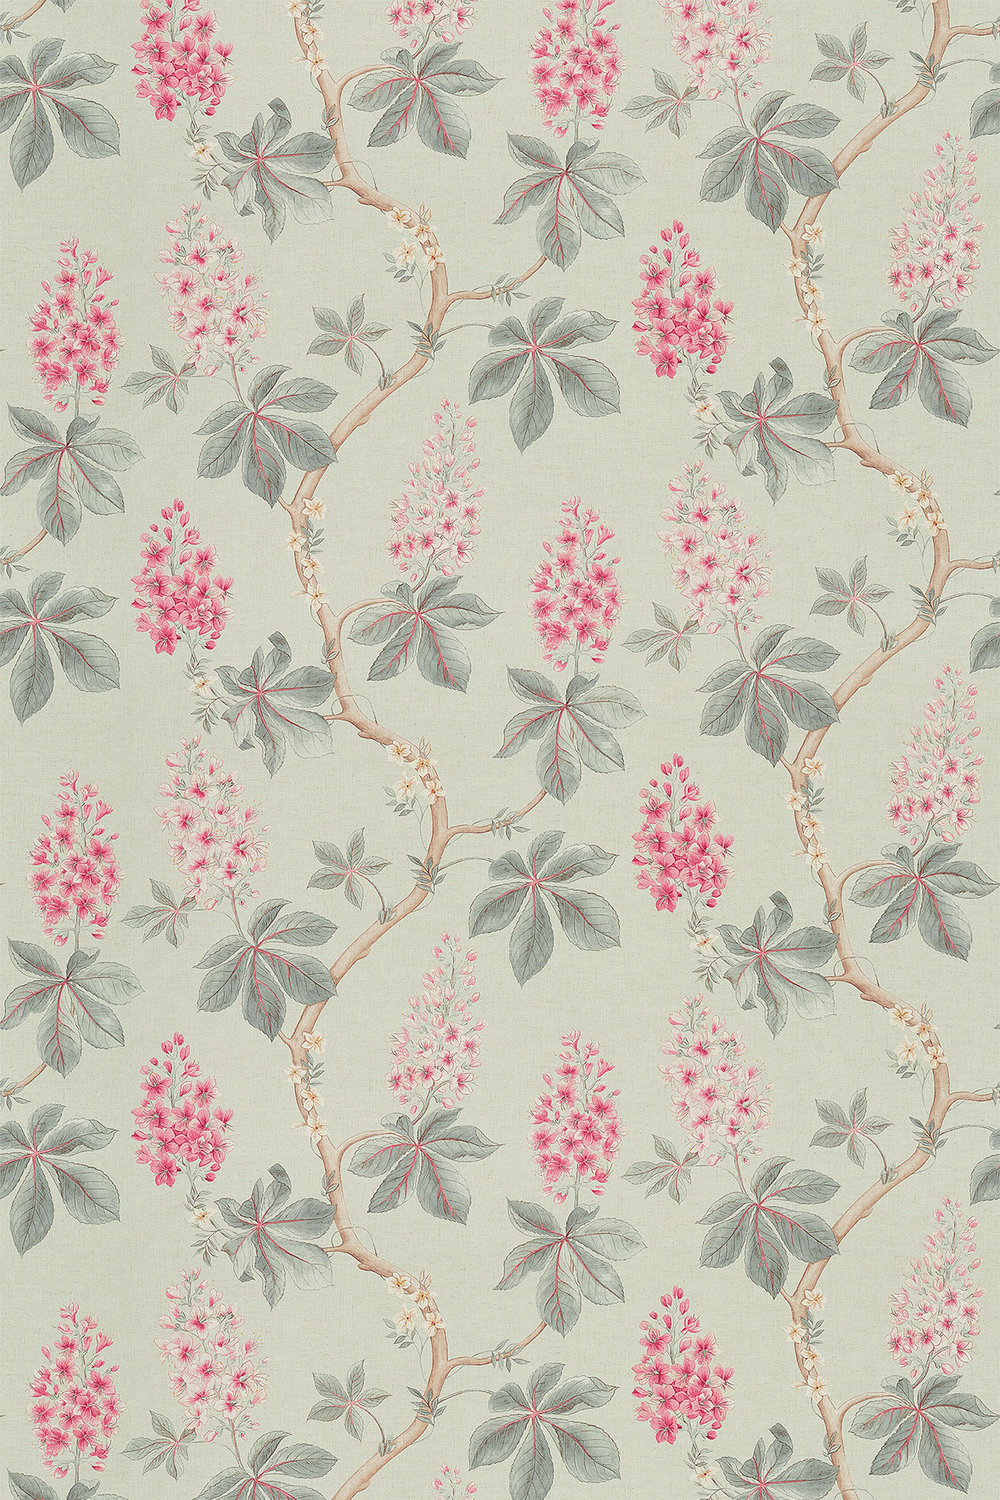 Sanderson Chestnut Tree Seaspray / Peony Fabric main image